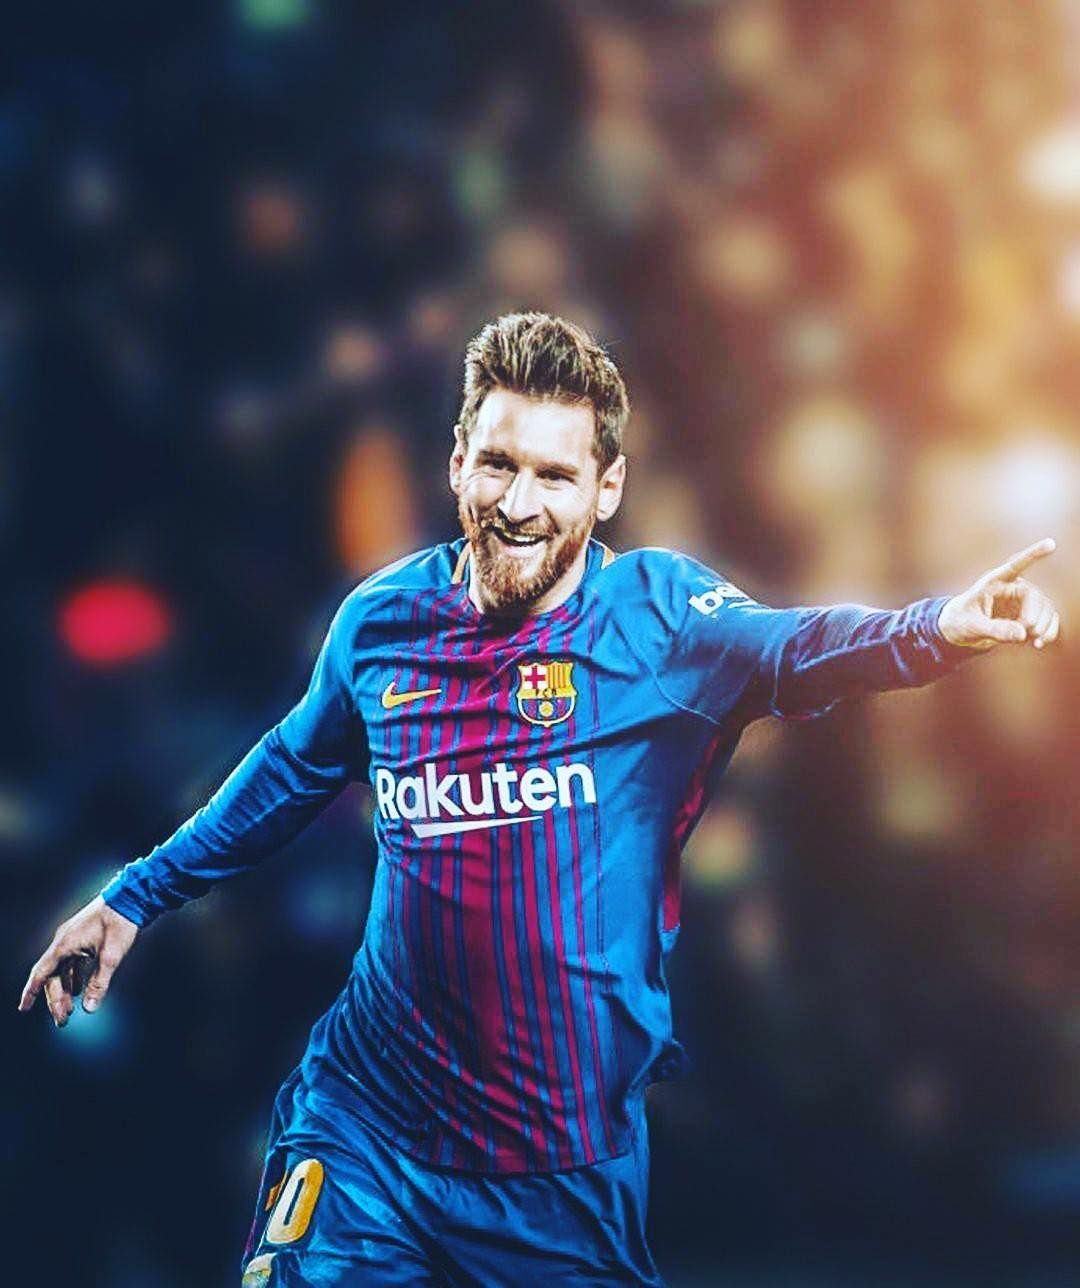 Everyday I Will Post A New Edit Please Follow If You Love Messi And Barcelona Futbolmessi Lionel Messi Lionel Messi Barcelona Lionel Messi Wallpapers